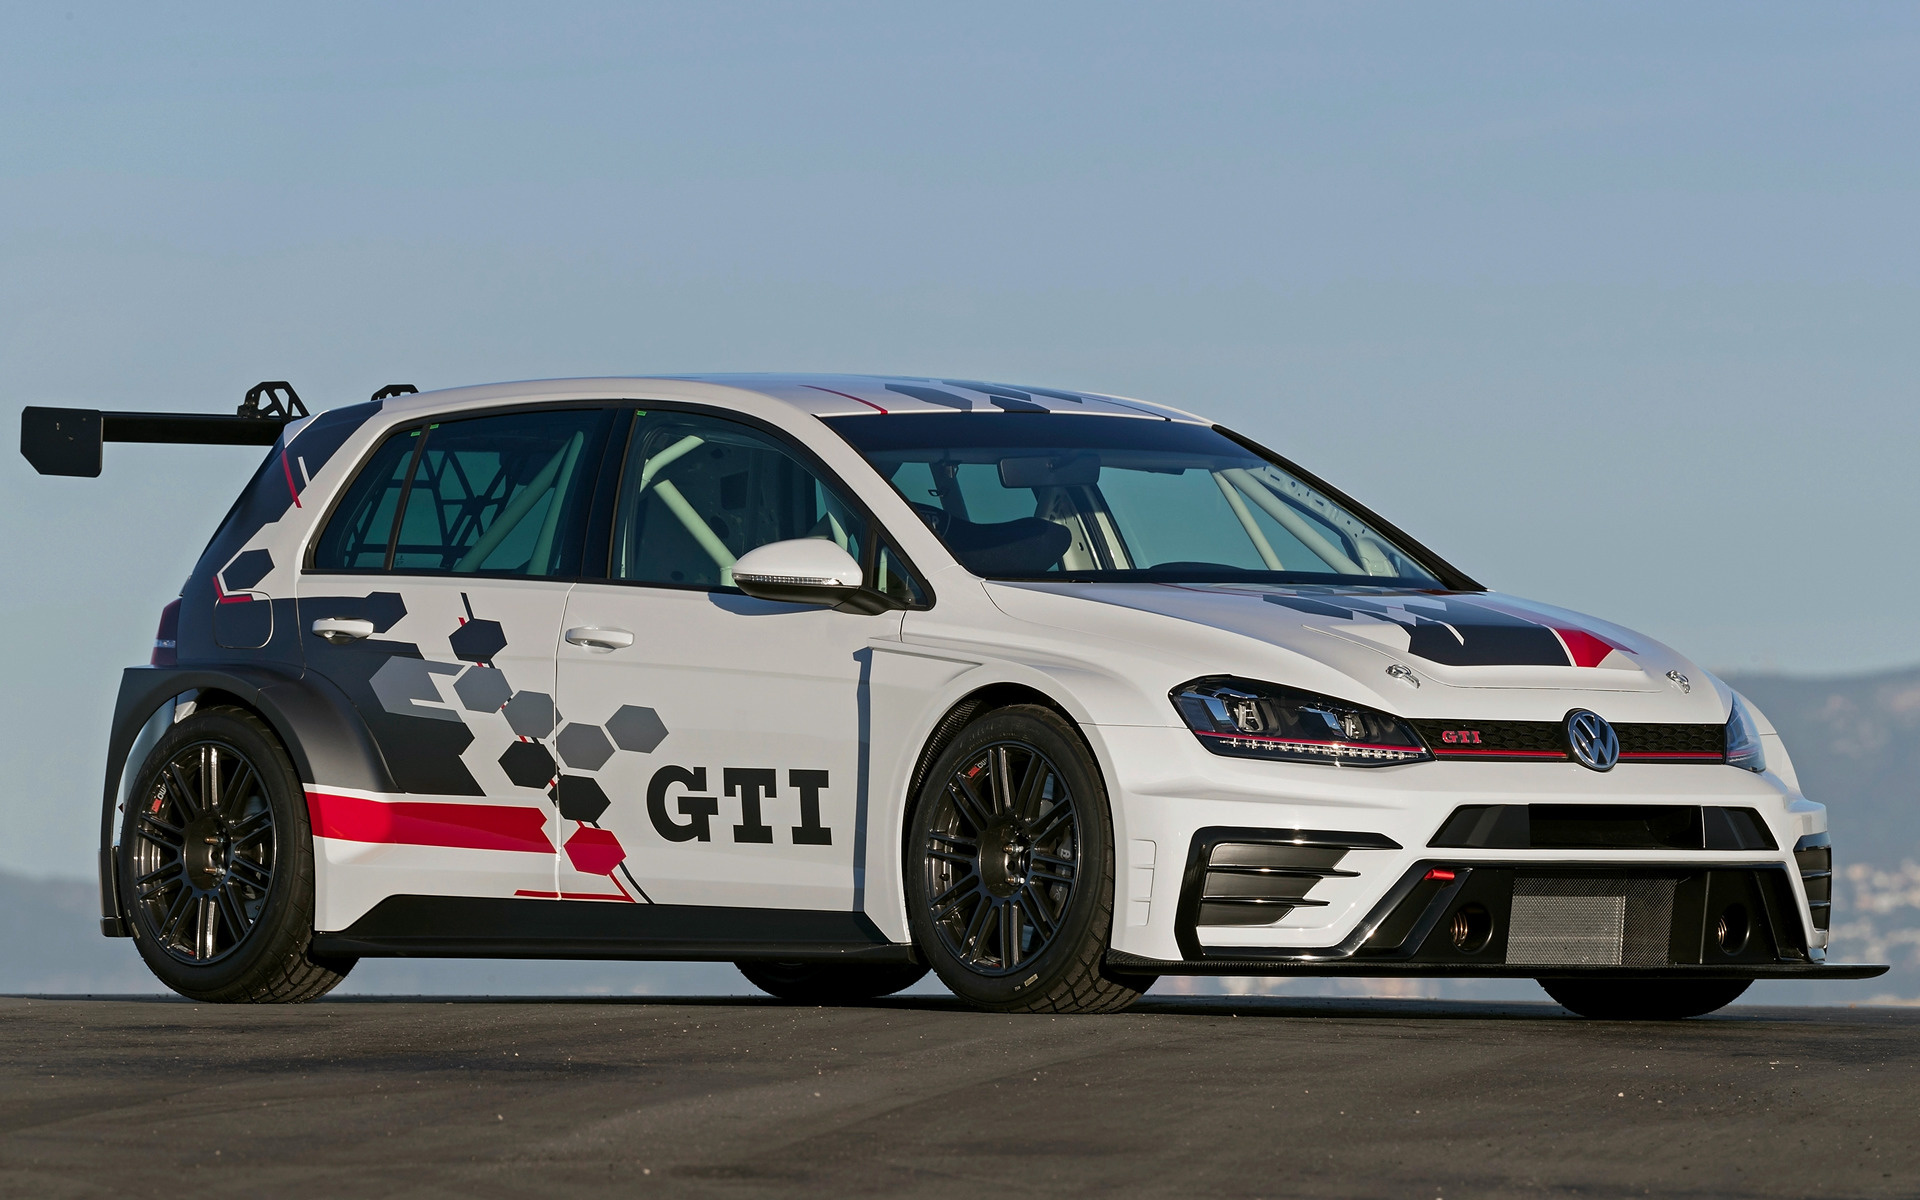 volkswagen-golf-gti-tcr-car-wallpaper-66